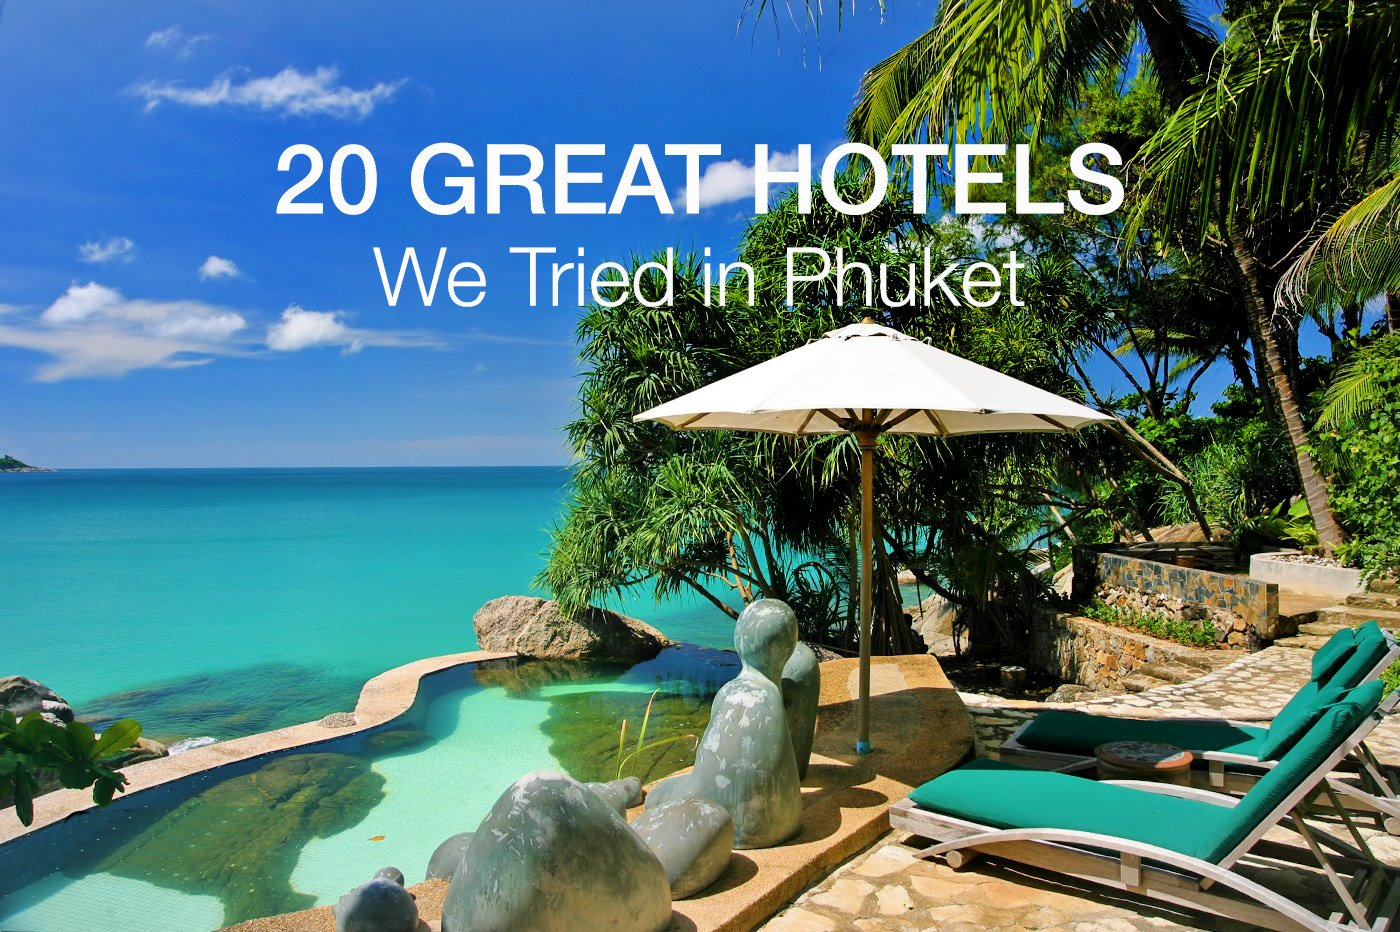 20 Great Hotels in Phuket We Tried and Loved